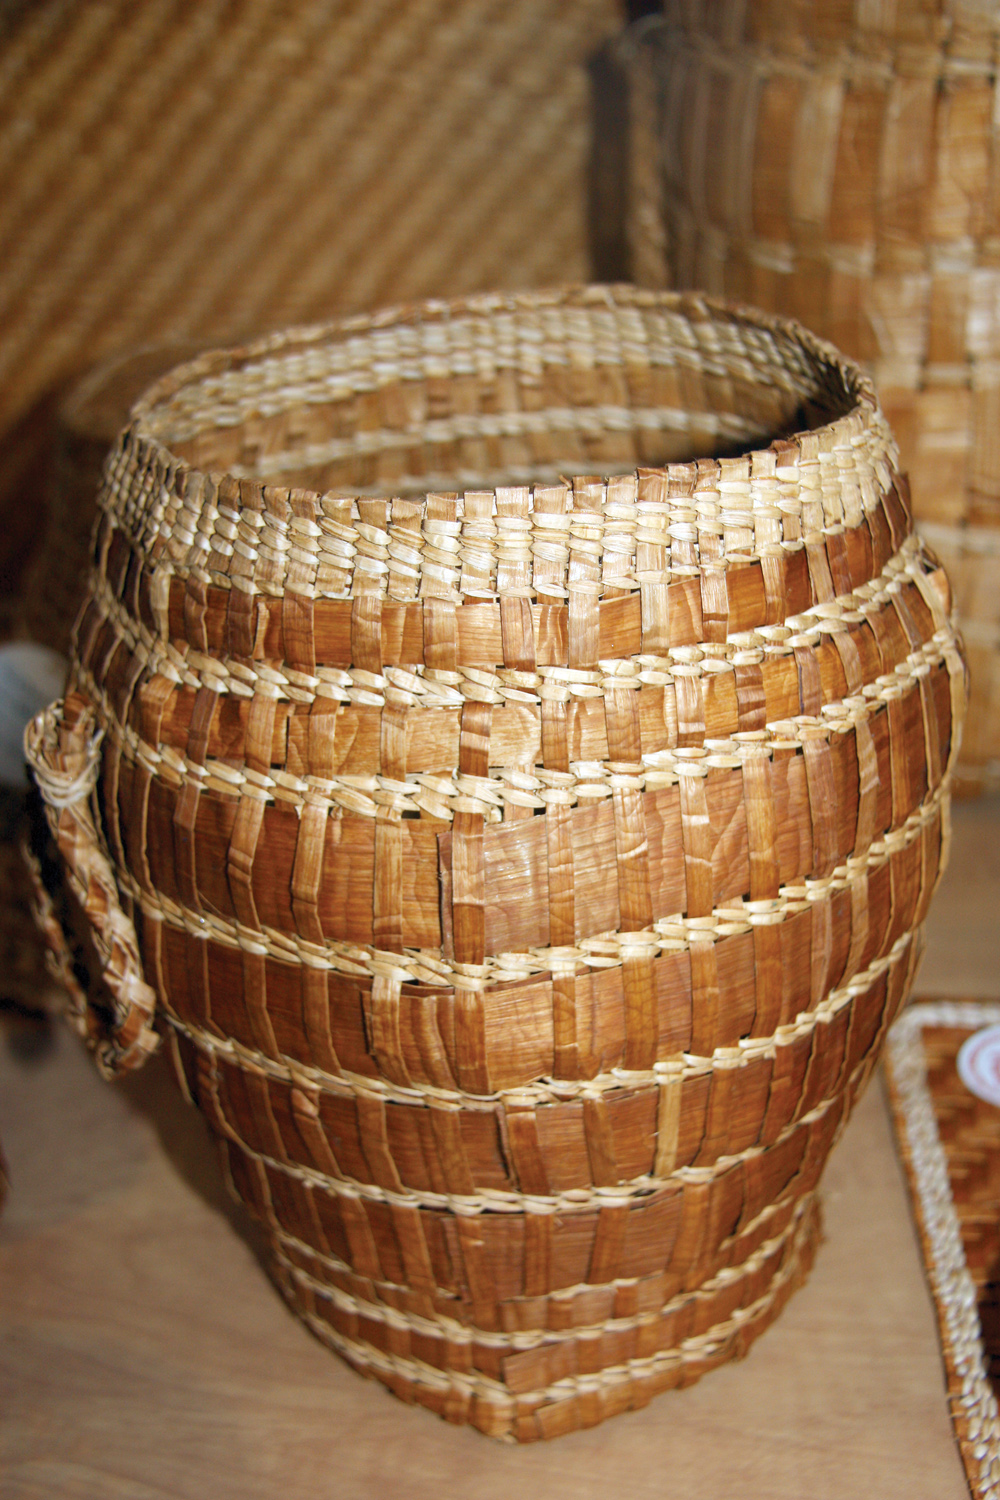 Basket Weaving Origin : Prince george free press ? baskets reflect history